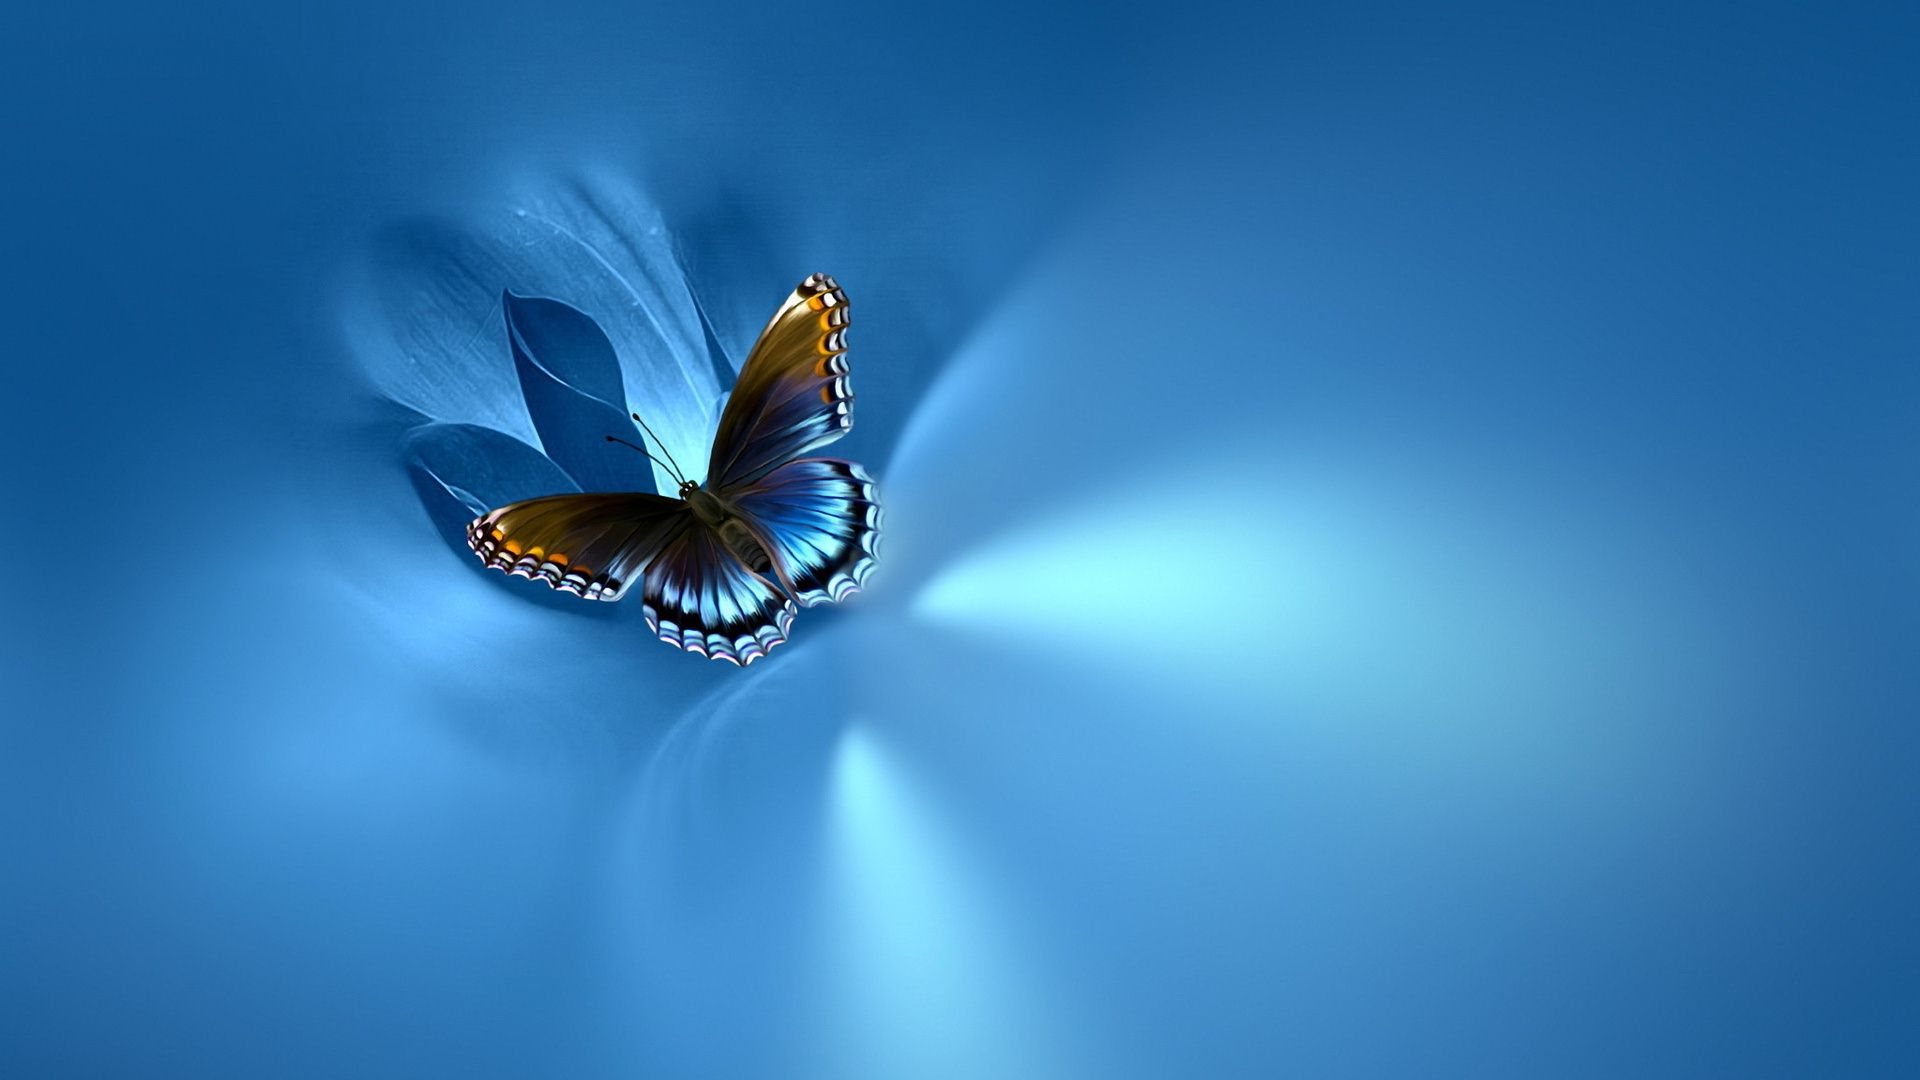 Blue Butterfly Wallpaper HD   PixelsTalk Net Blue Butterfly Wallpaper Desktop